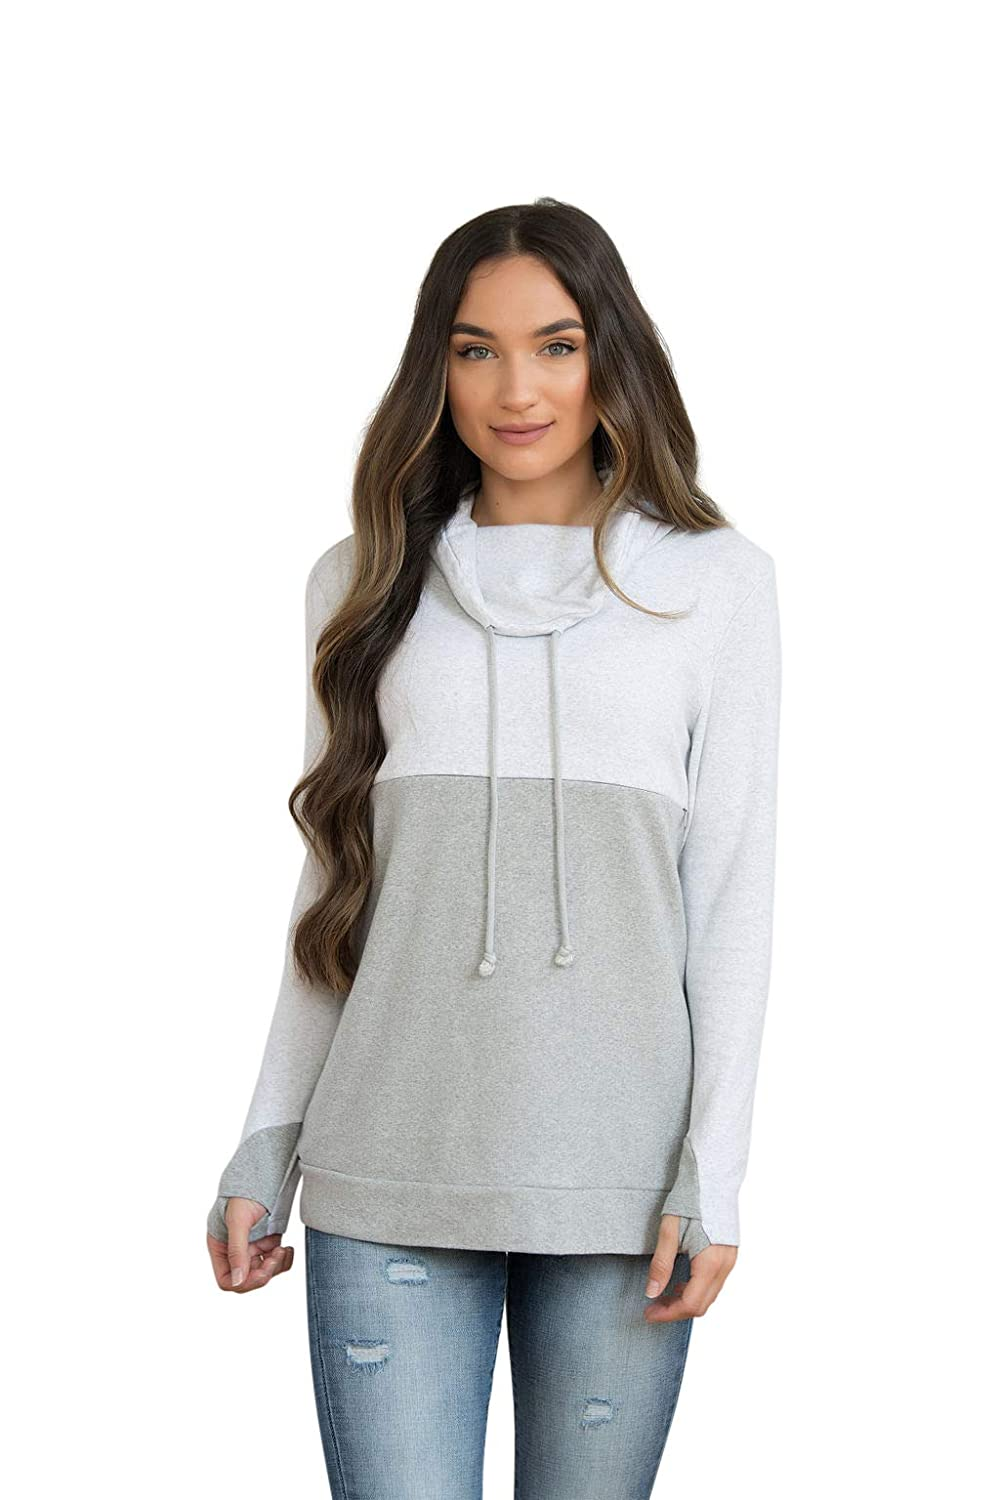 Nursing Queen. Nursing Top for Breastfeeding - Colorblock Nursing Sweatshirt - Hidden Zipper - Gray